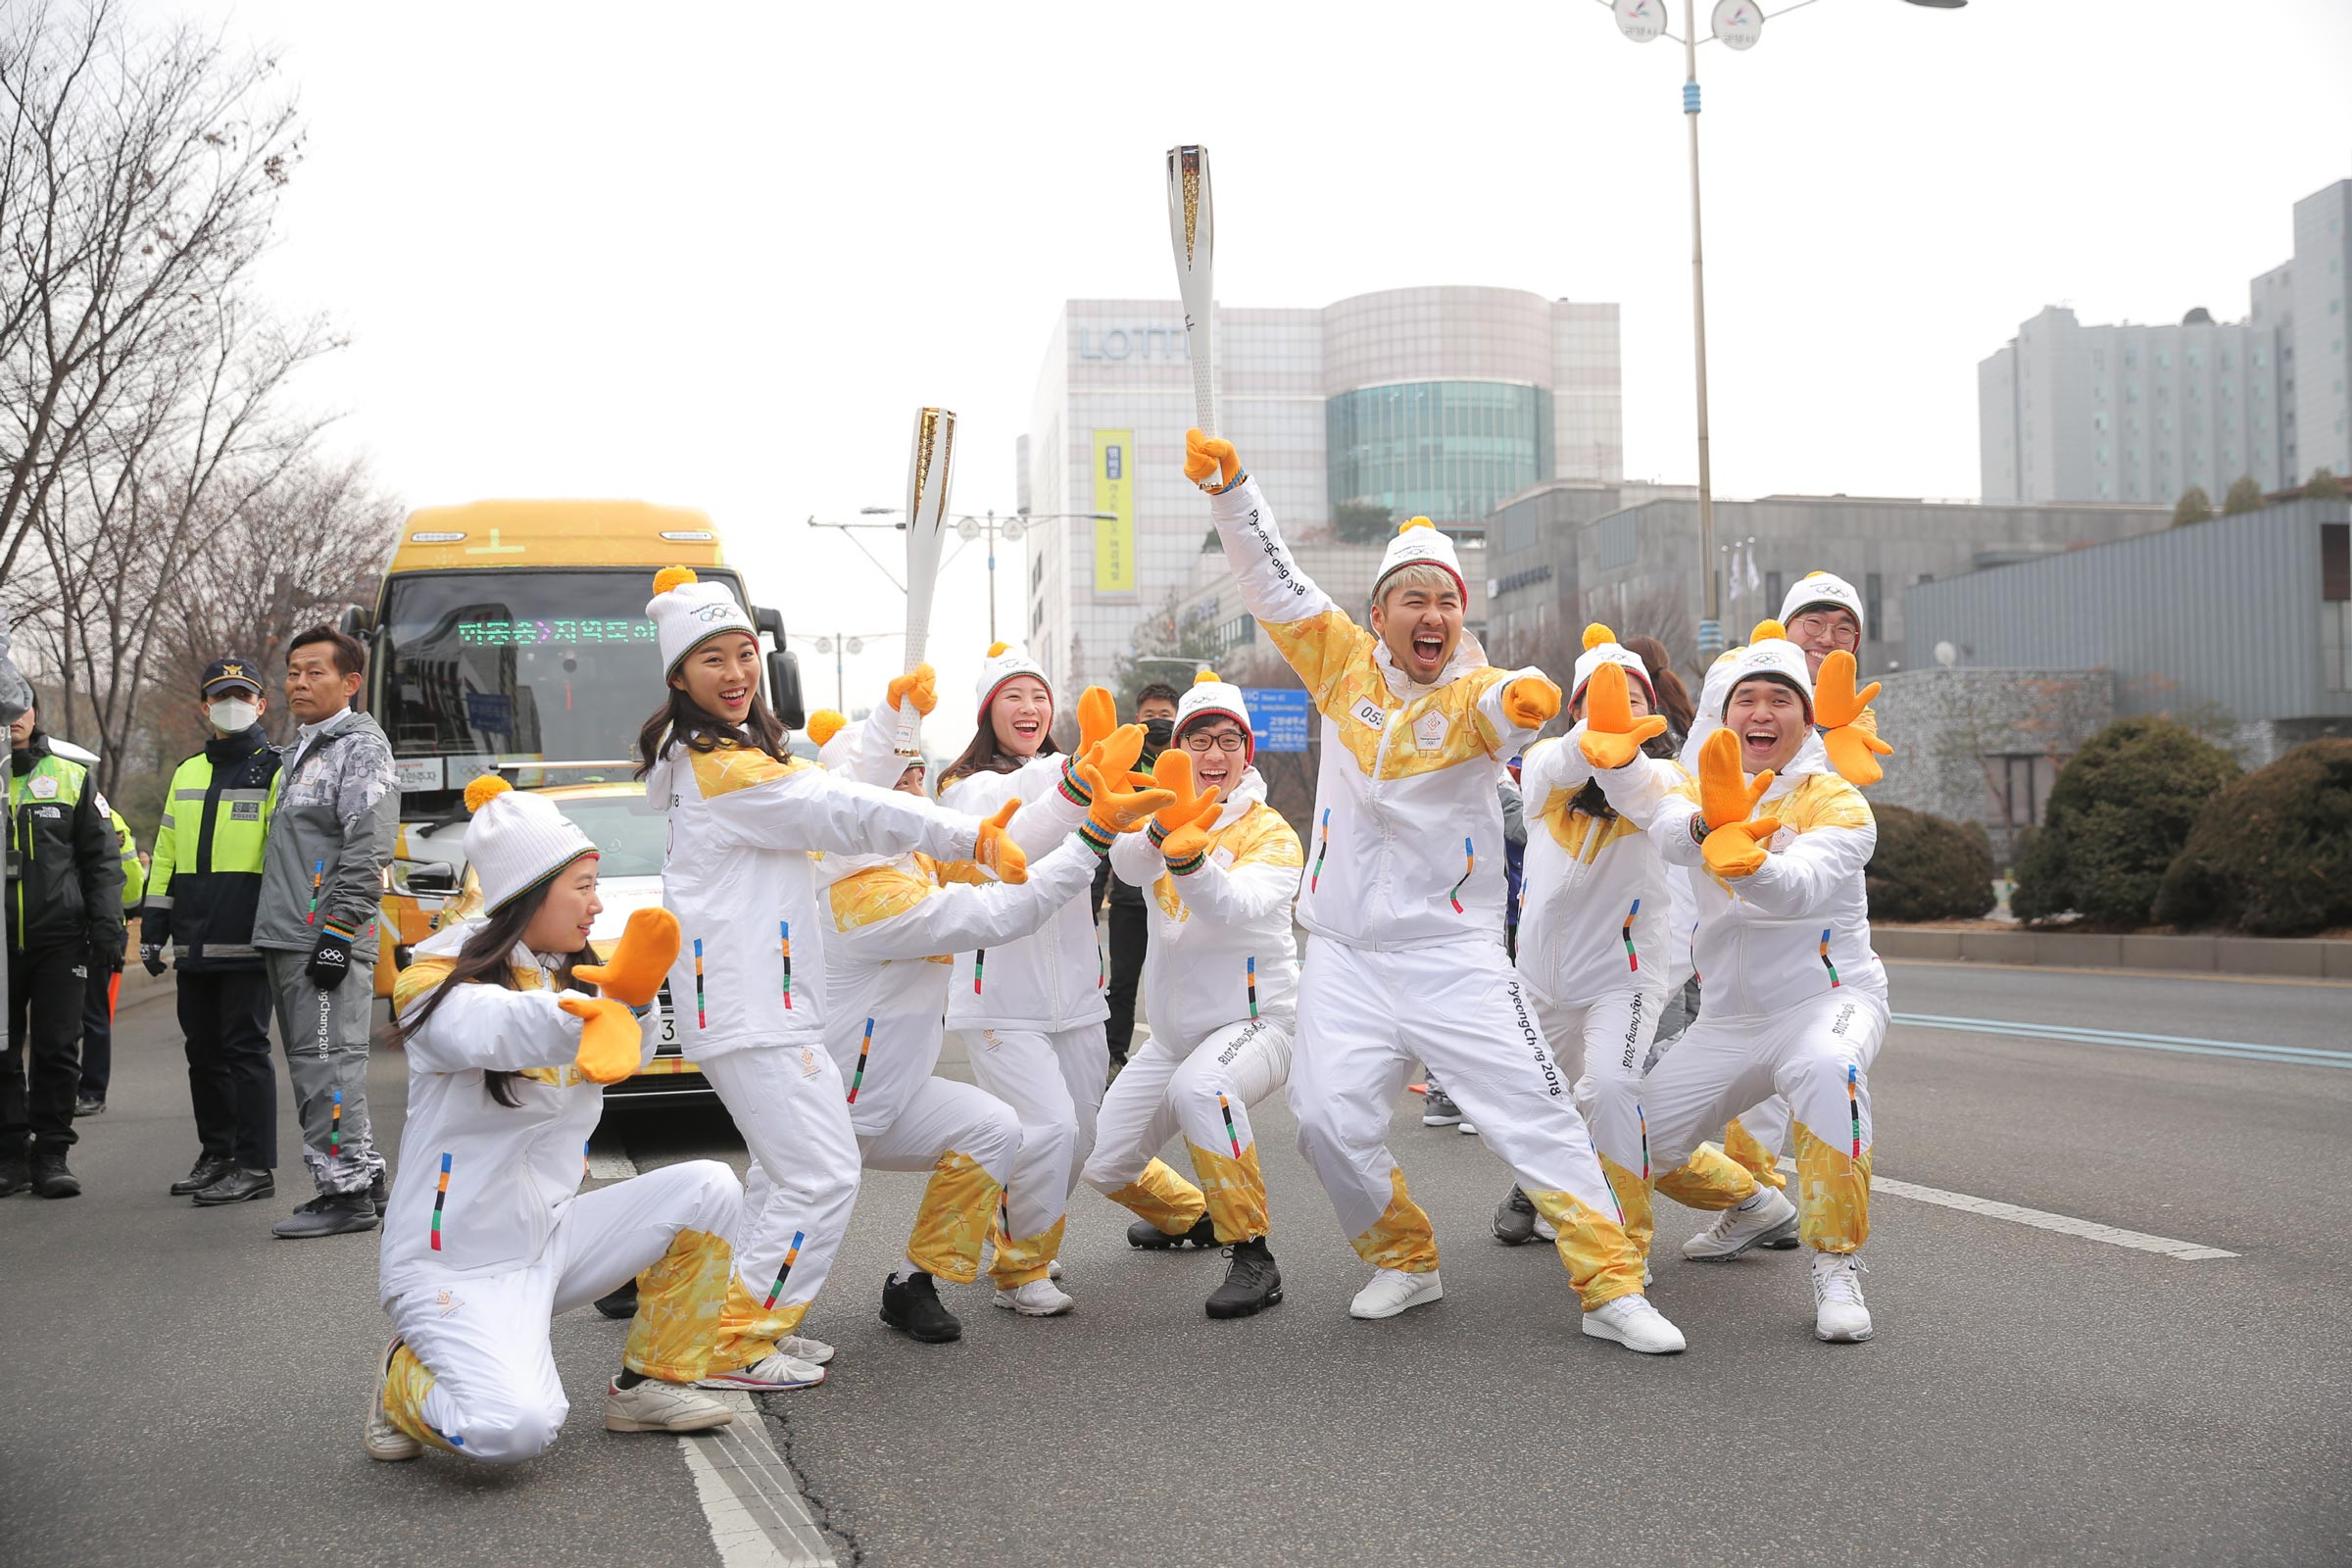 PyeongChang 2018 Olympic Torch Relay - Day 79